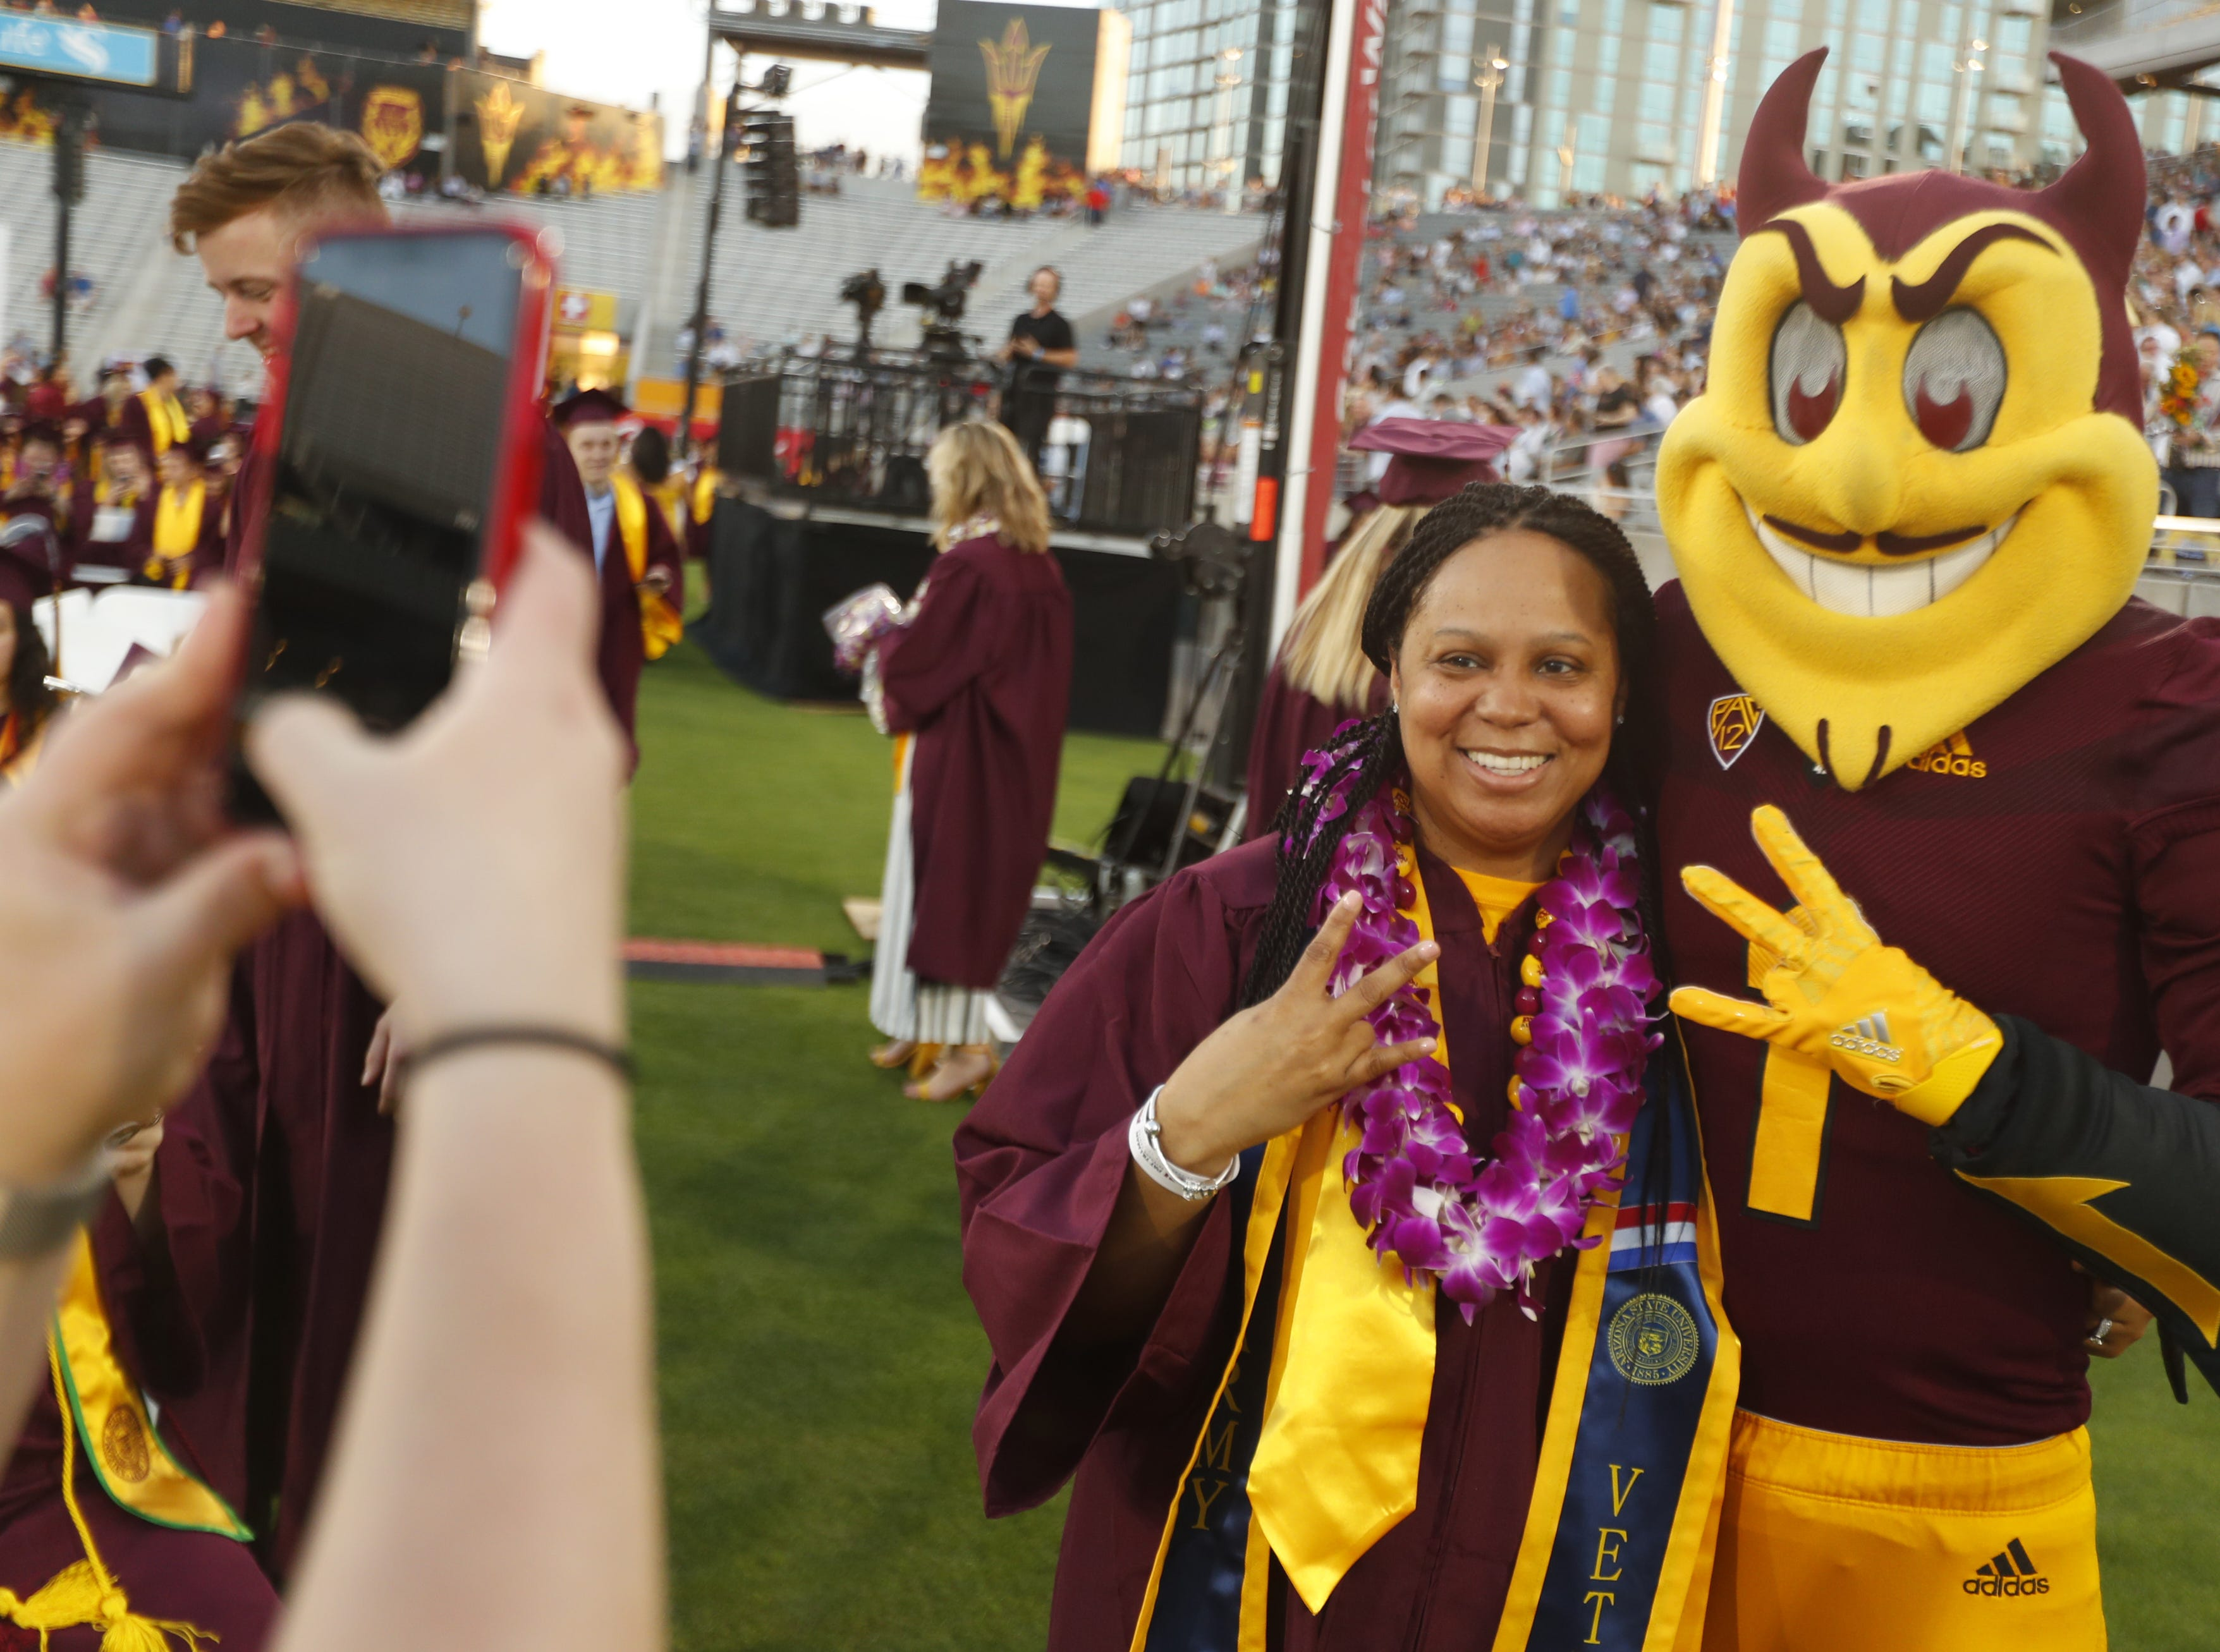 ASU's Cherise Shockley poses for a picture with Sparky during ASU's Undergraduate Commencement at Sun Devil Stadium in Tempe, Ariz. on May 6, 2019.